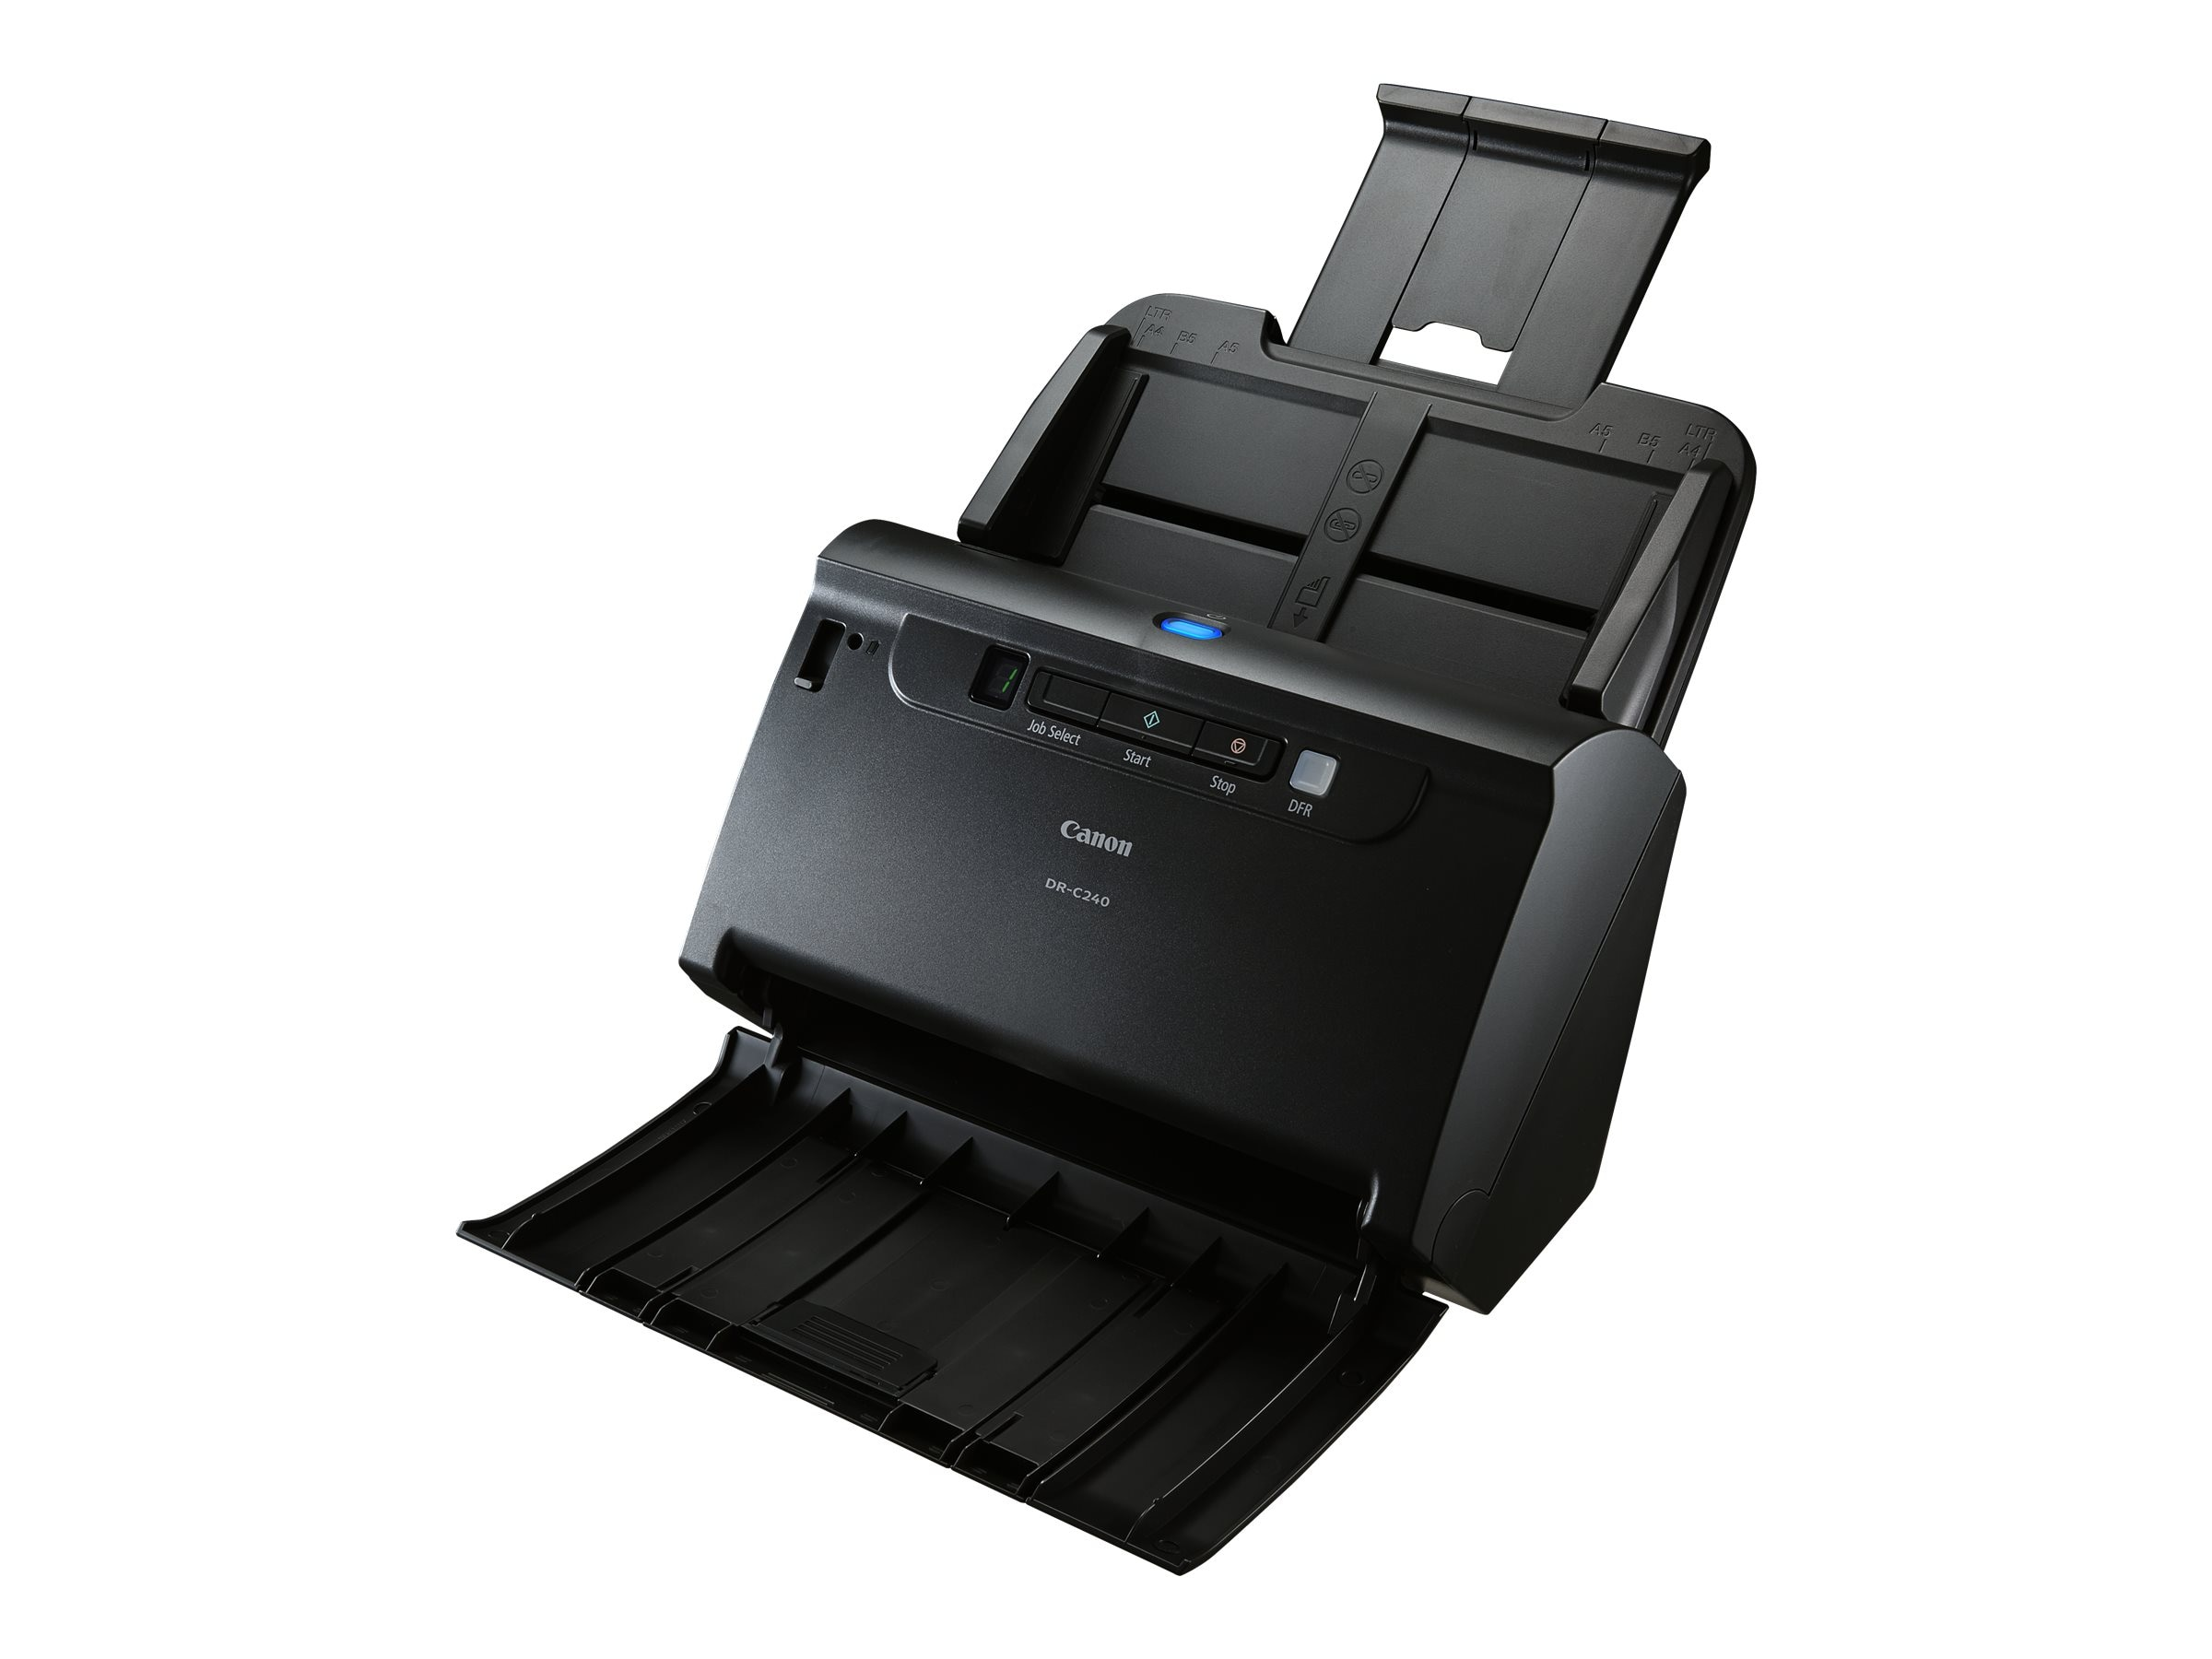 Open Box Canon imageFORMULA DR-C240 Document Management Scanner